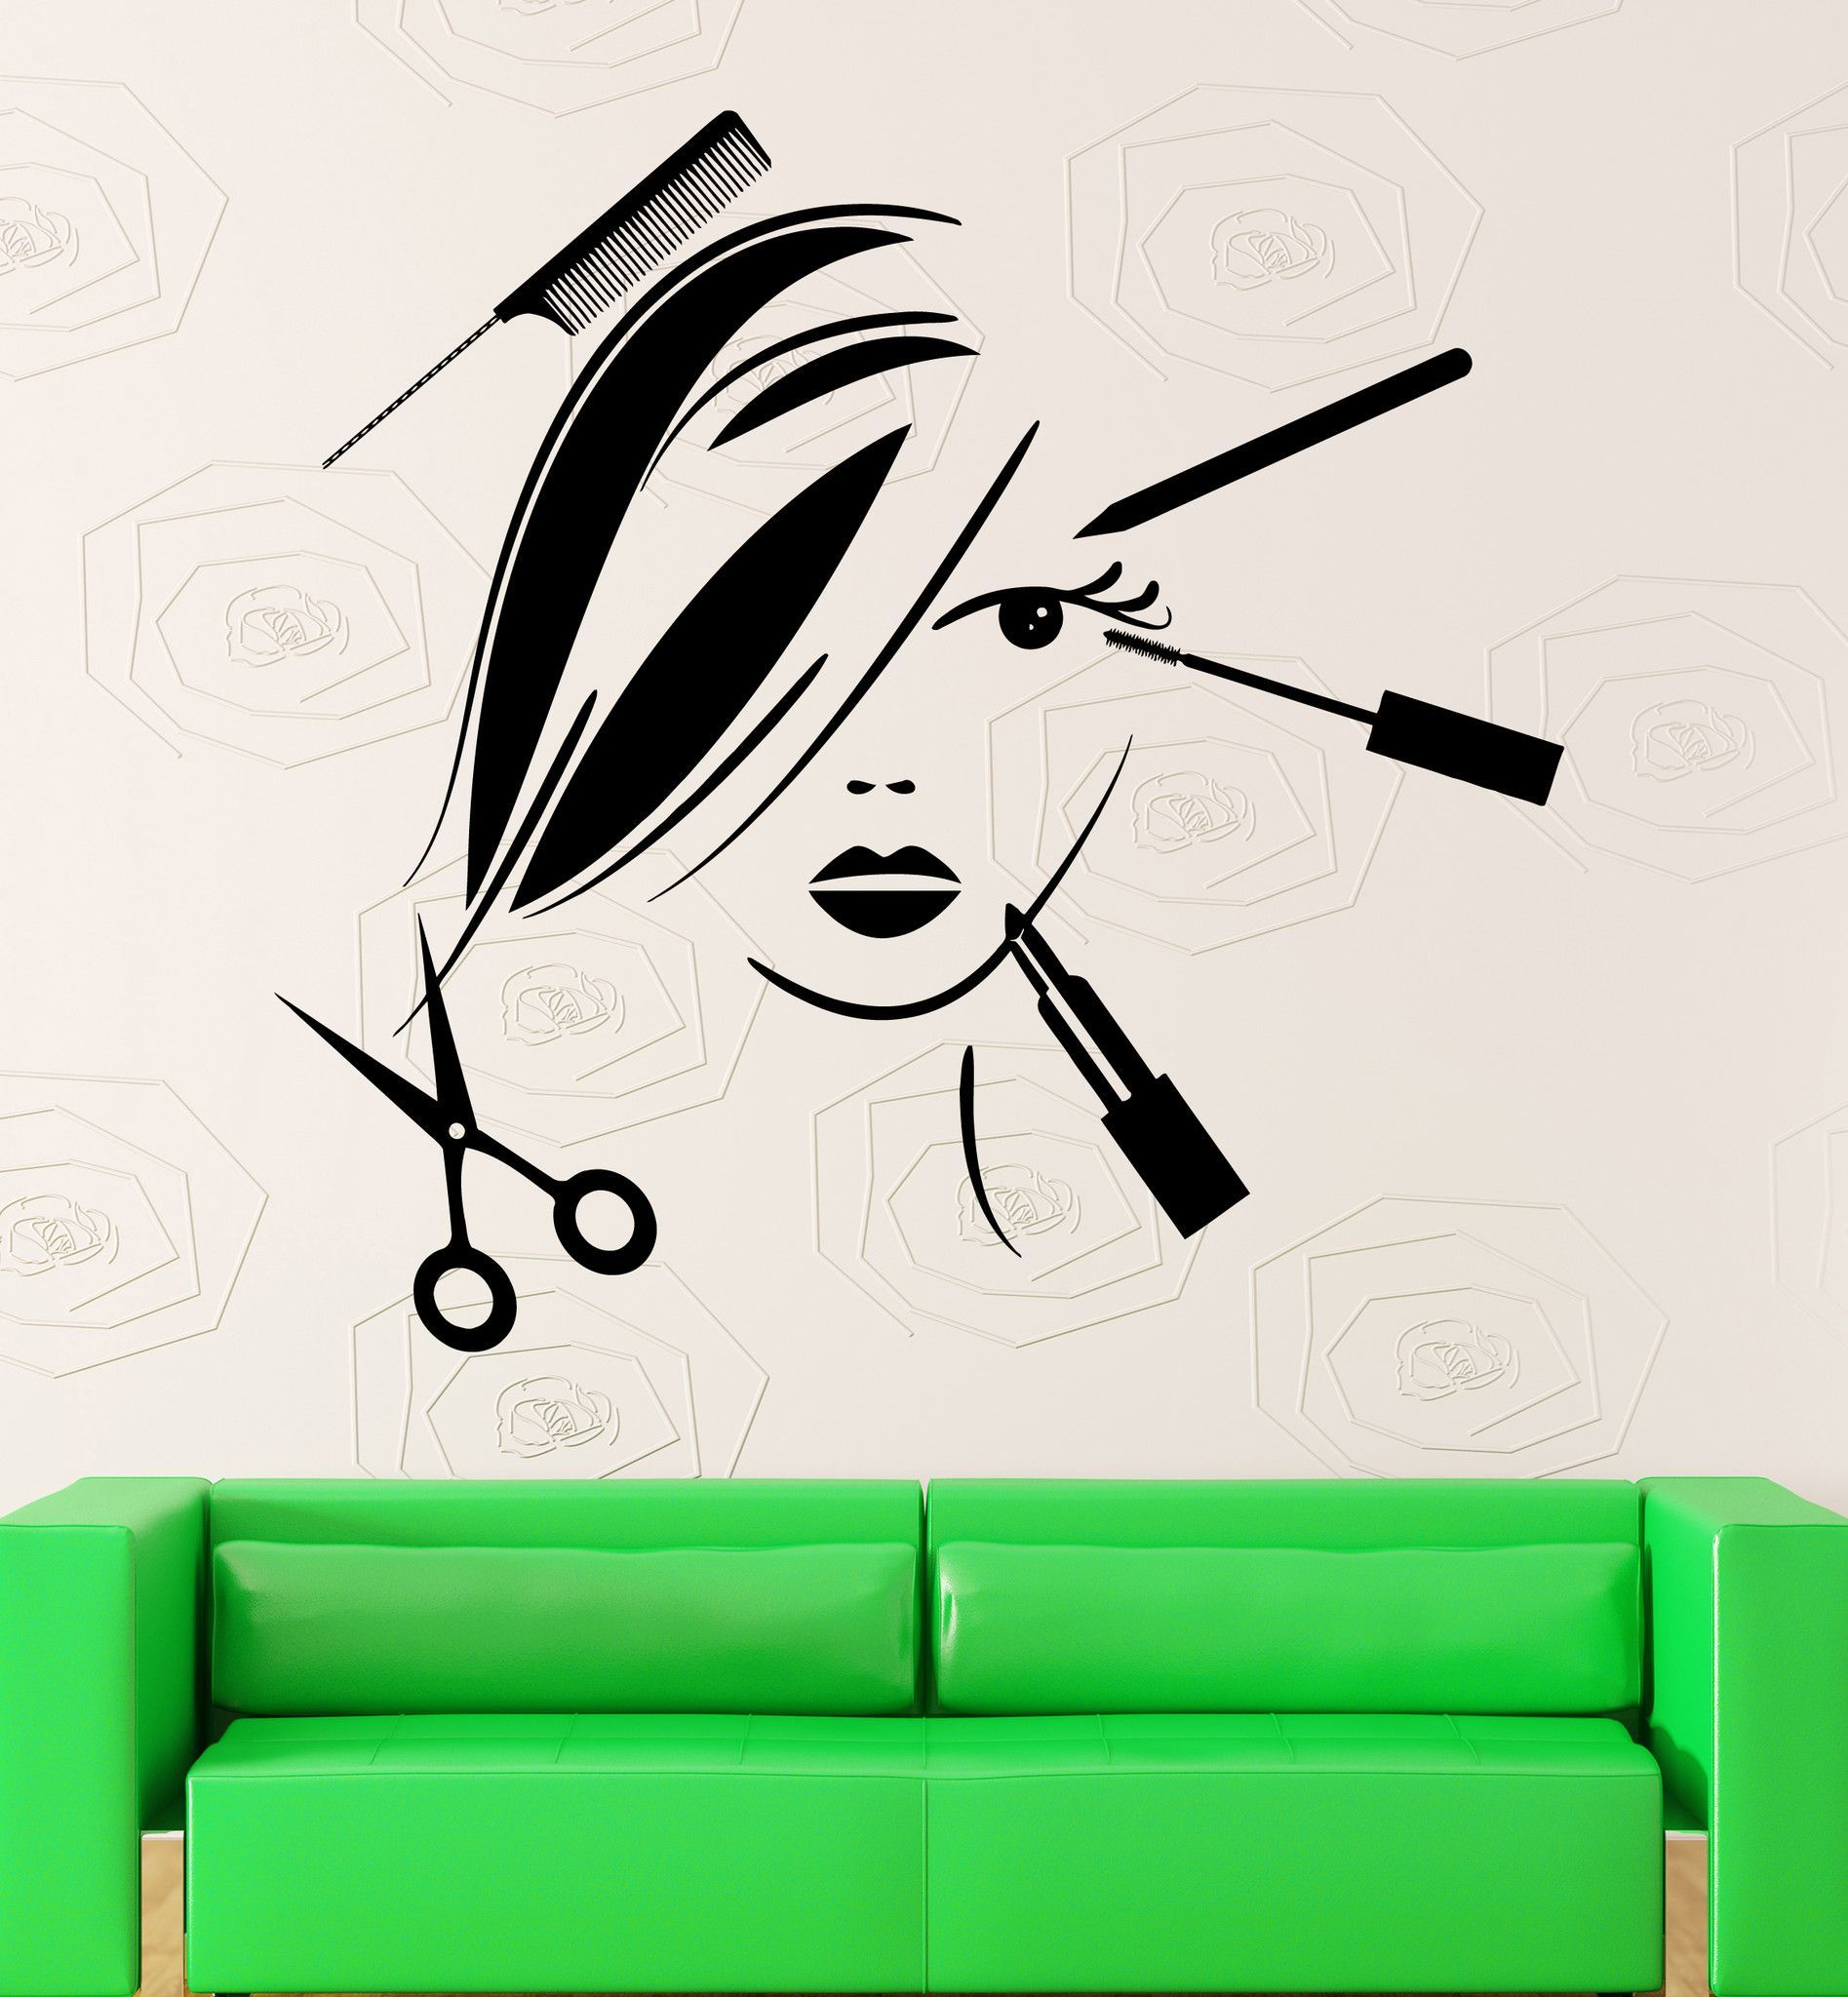 Vinyl Decal Beauty Salon Decor Hair Stylist Tools Spa Barber Style - Custom vinyl wall decals for hair salonvinyl wall decal hair salon stylist hairdresser barber shop